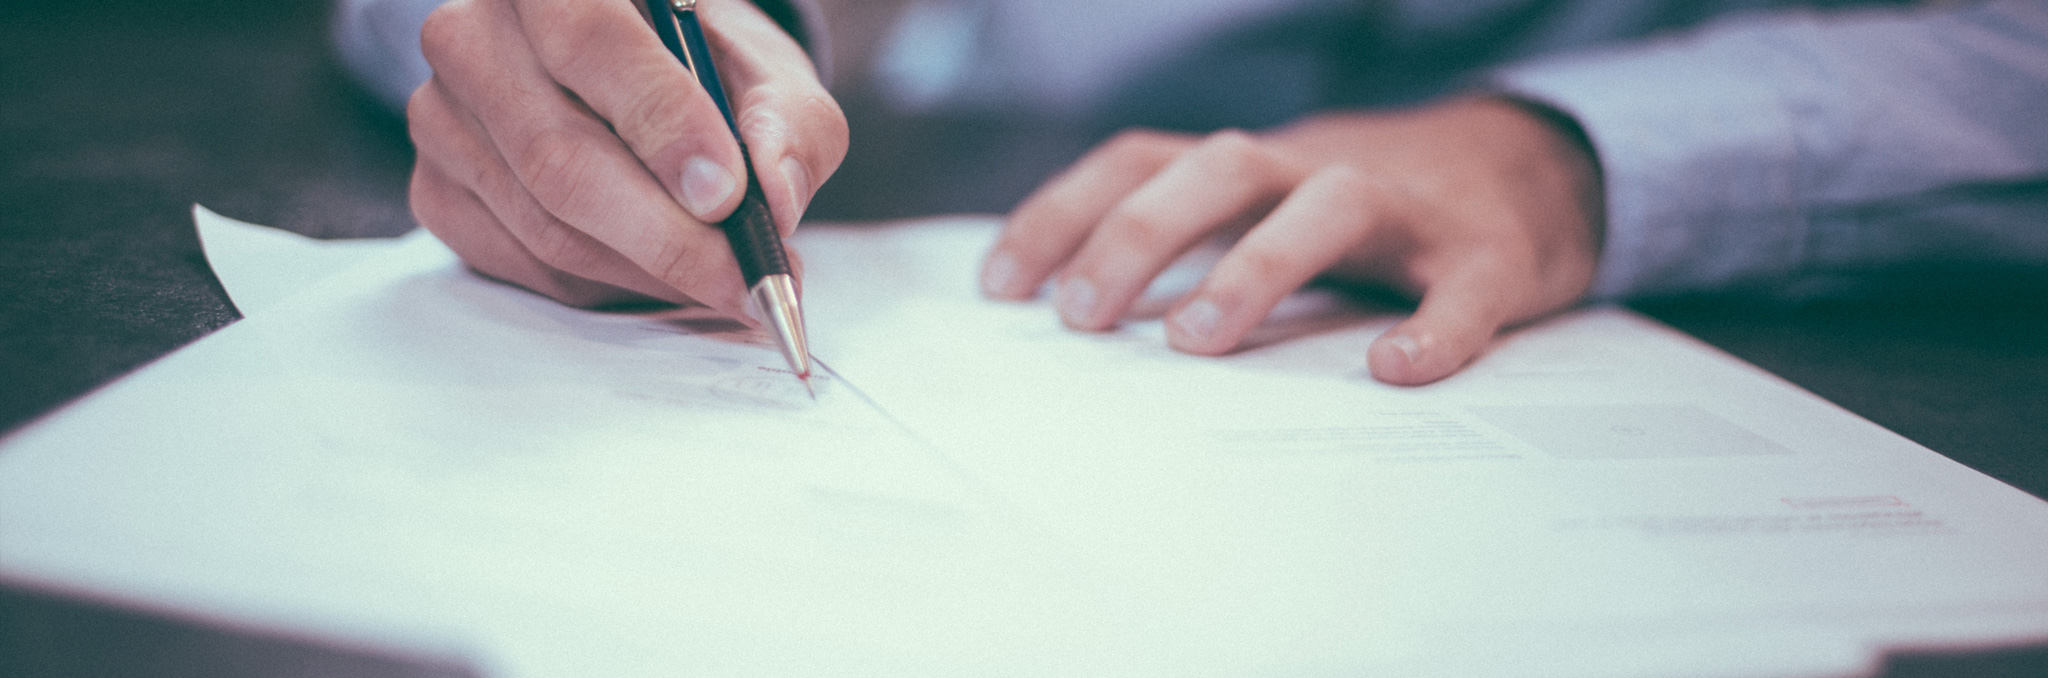 Person signing documents. Photo by Helloquence on Unsplash